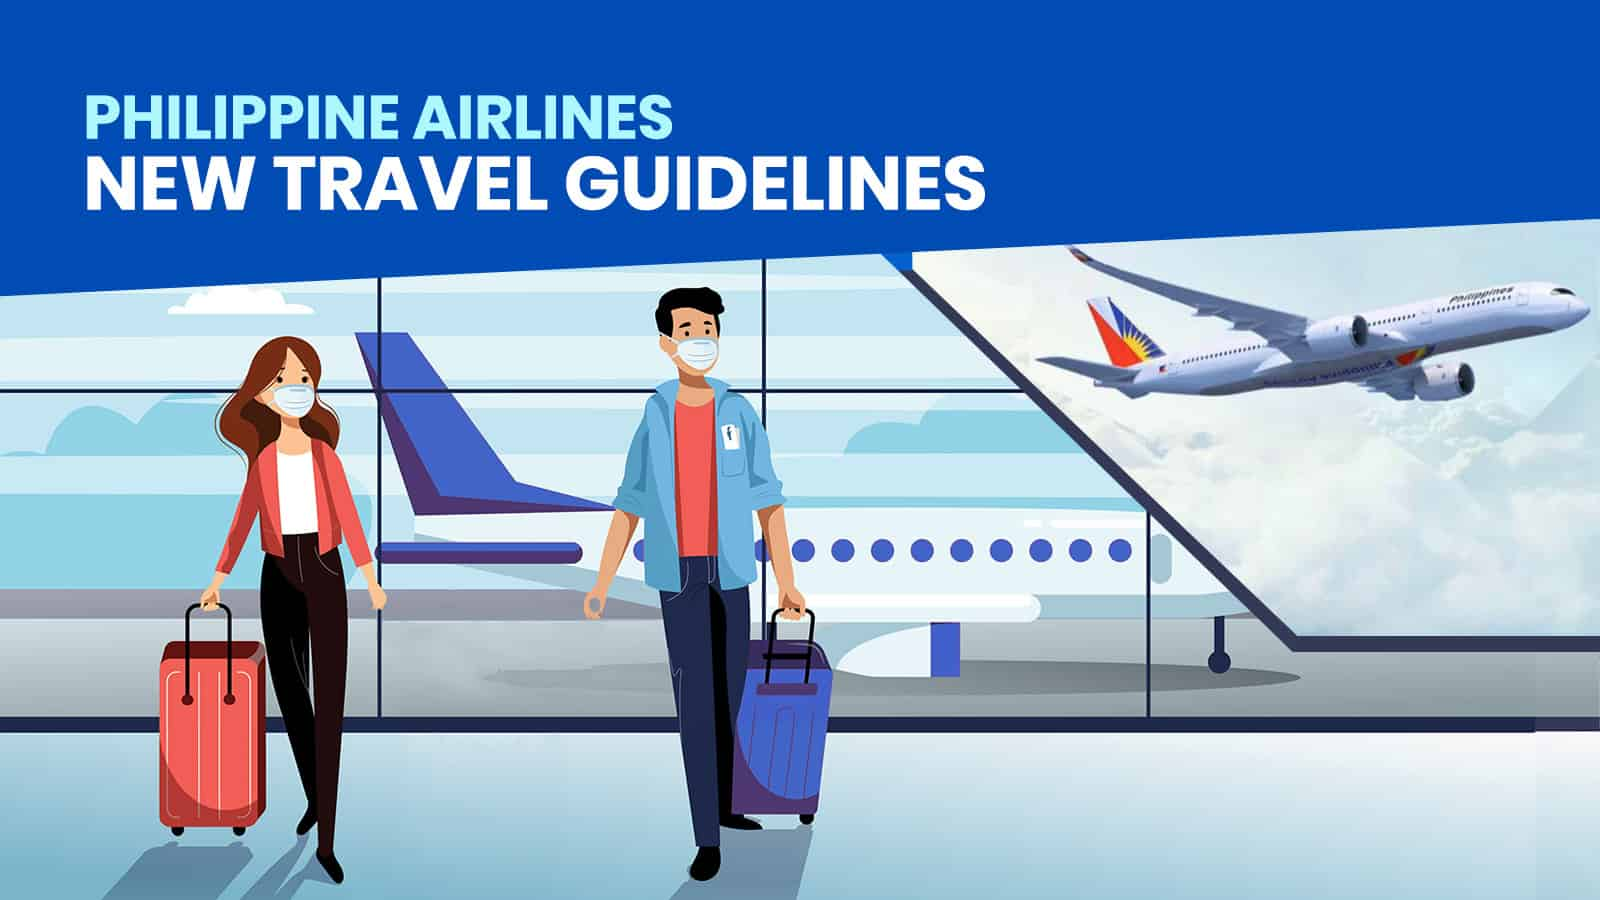 PHILIPPINE AIRLINES: New Travel Guidelines Before, During & After Flight